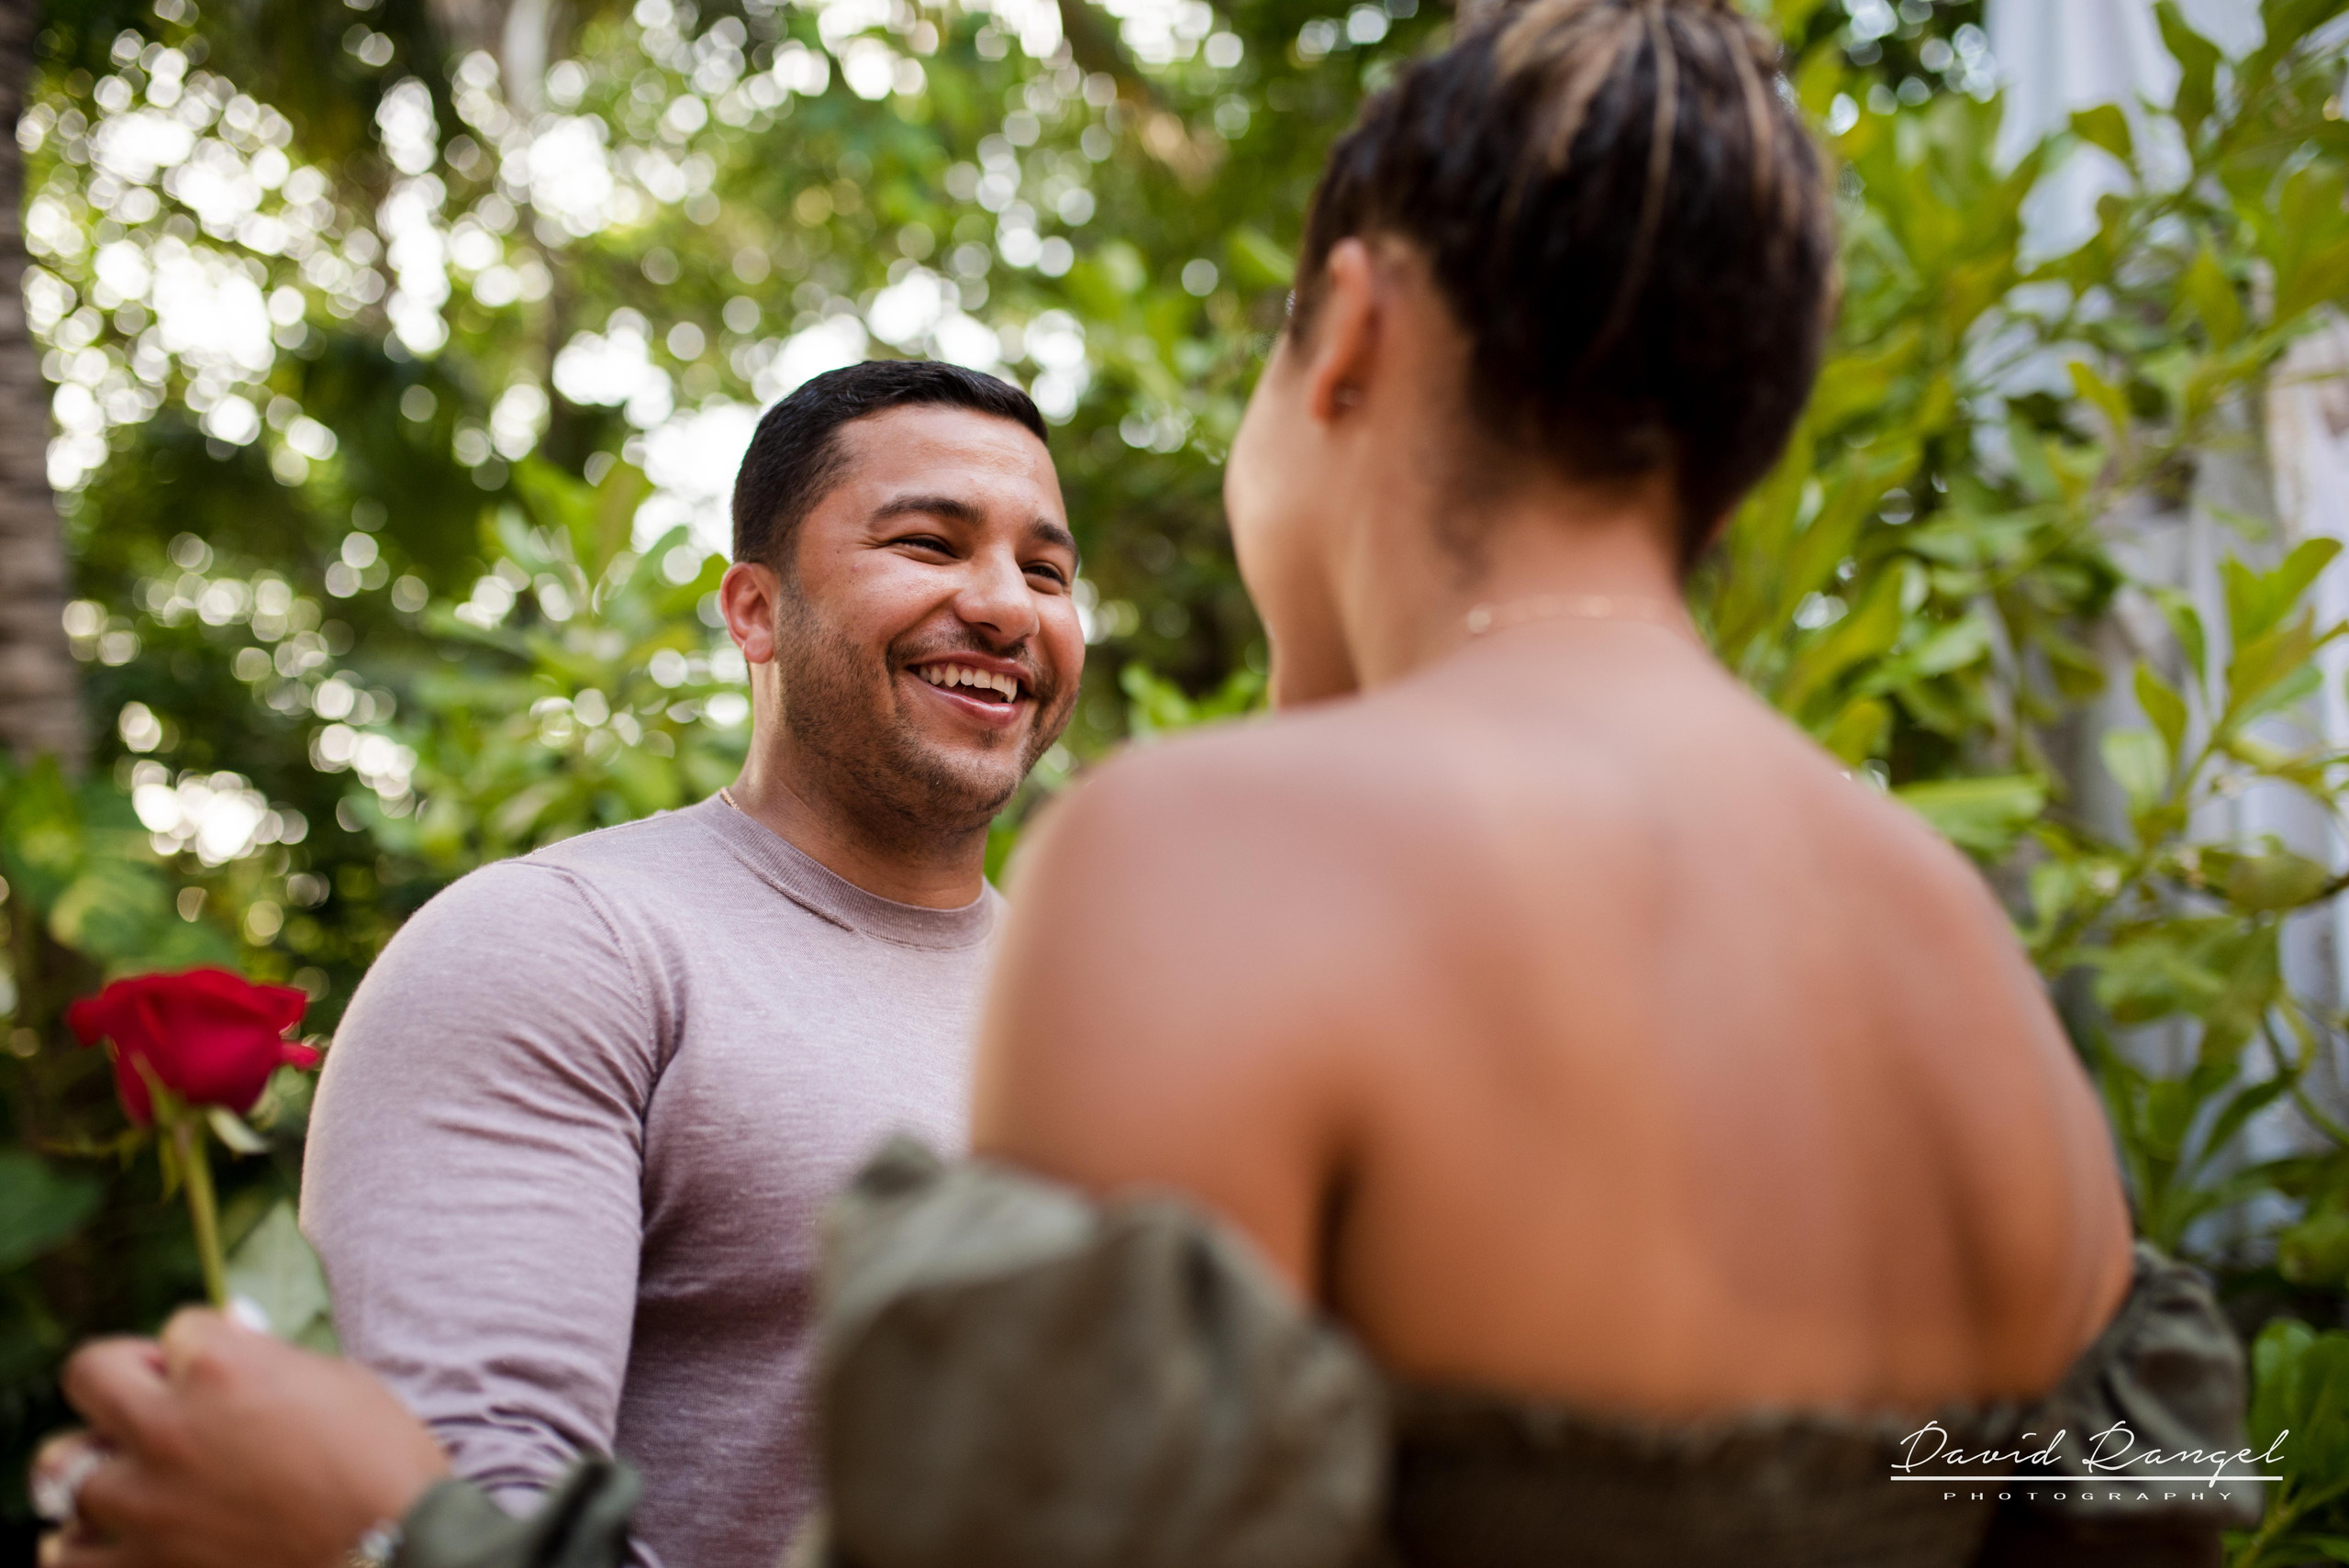 casa+malca+couple+engagement+session+photo+riviera+maya+ring+proposal+marriage+nature+candy+shoot